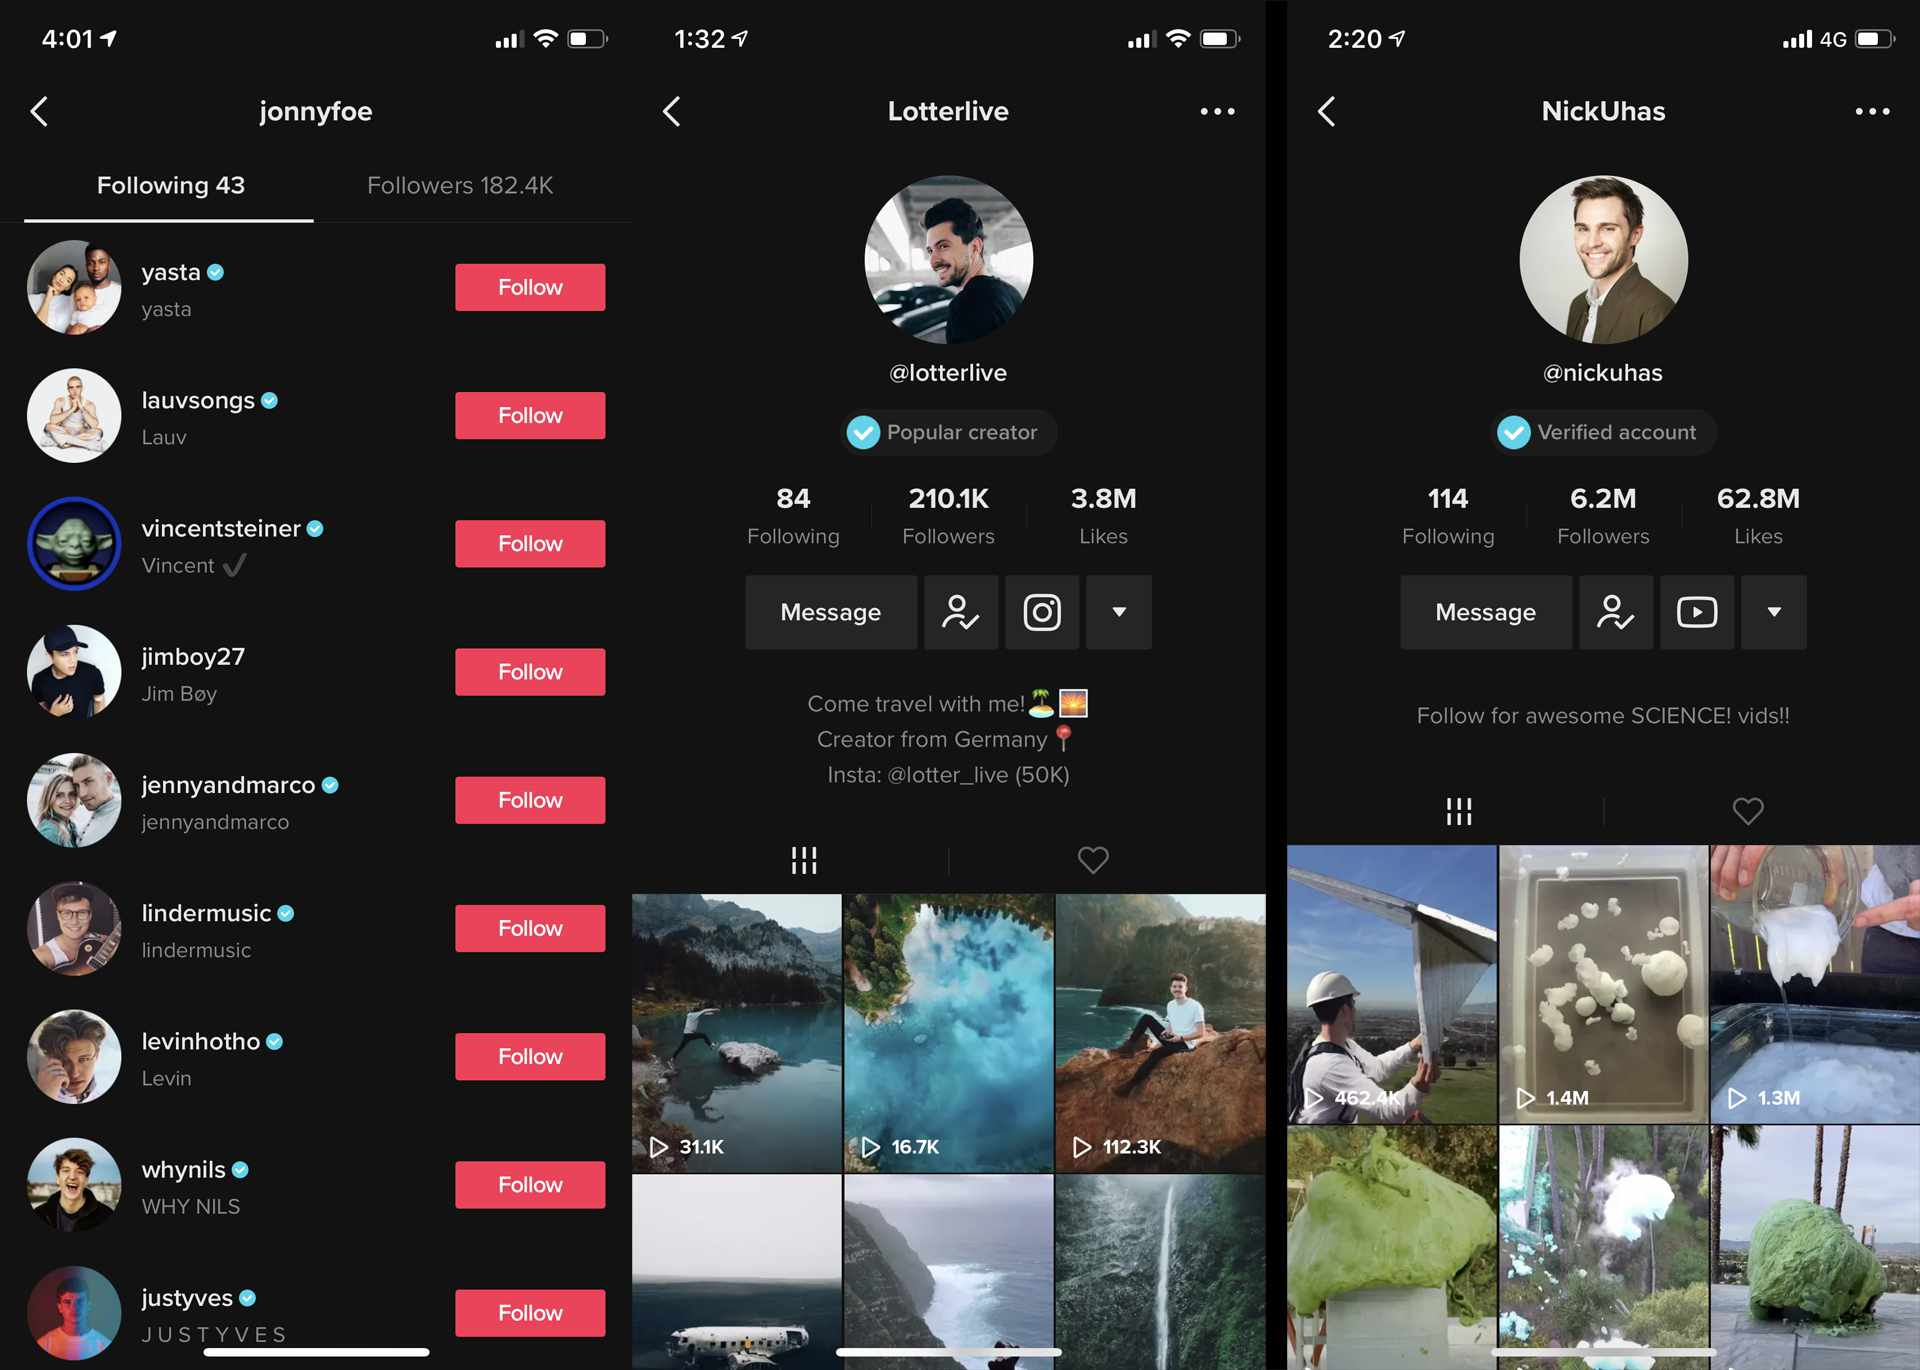 TiKTok app on iPhone showing verified accounts with the blue check mark.